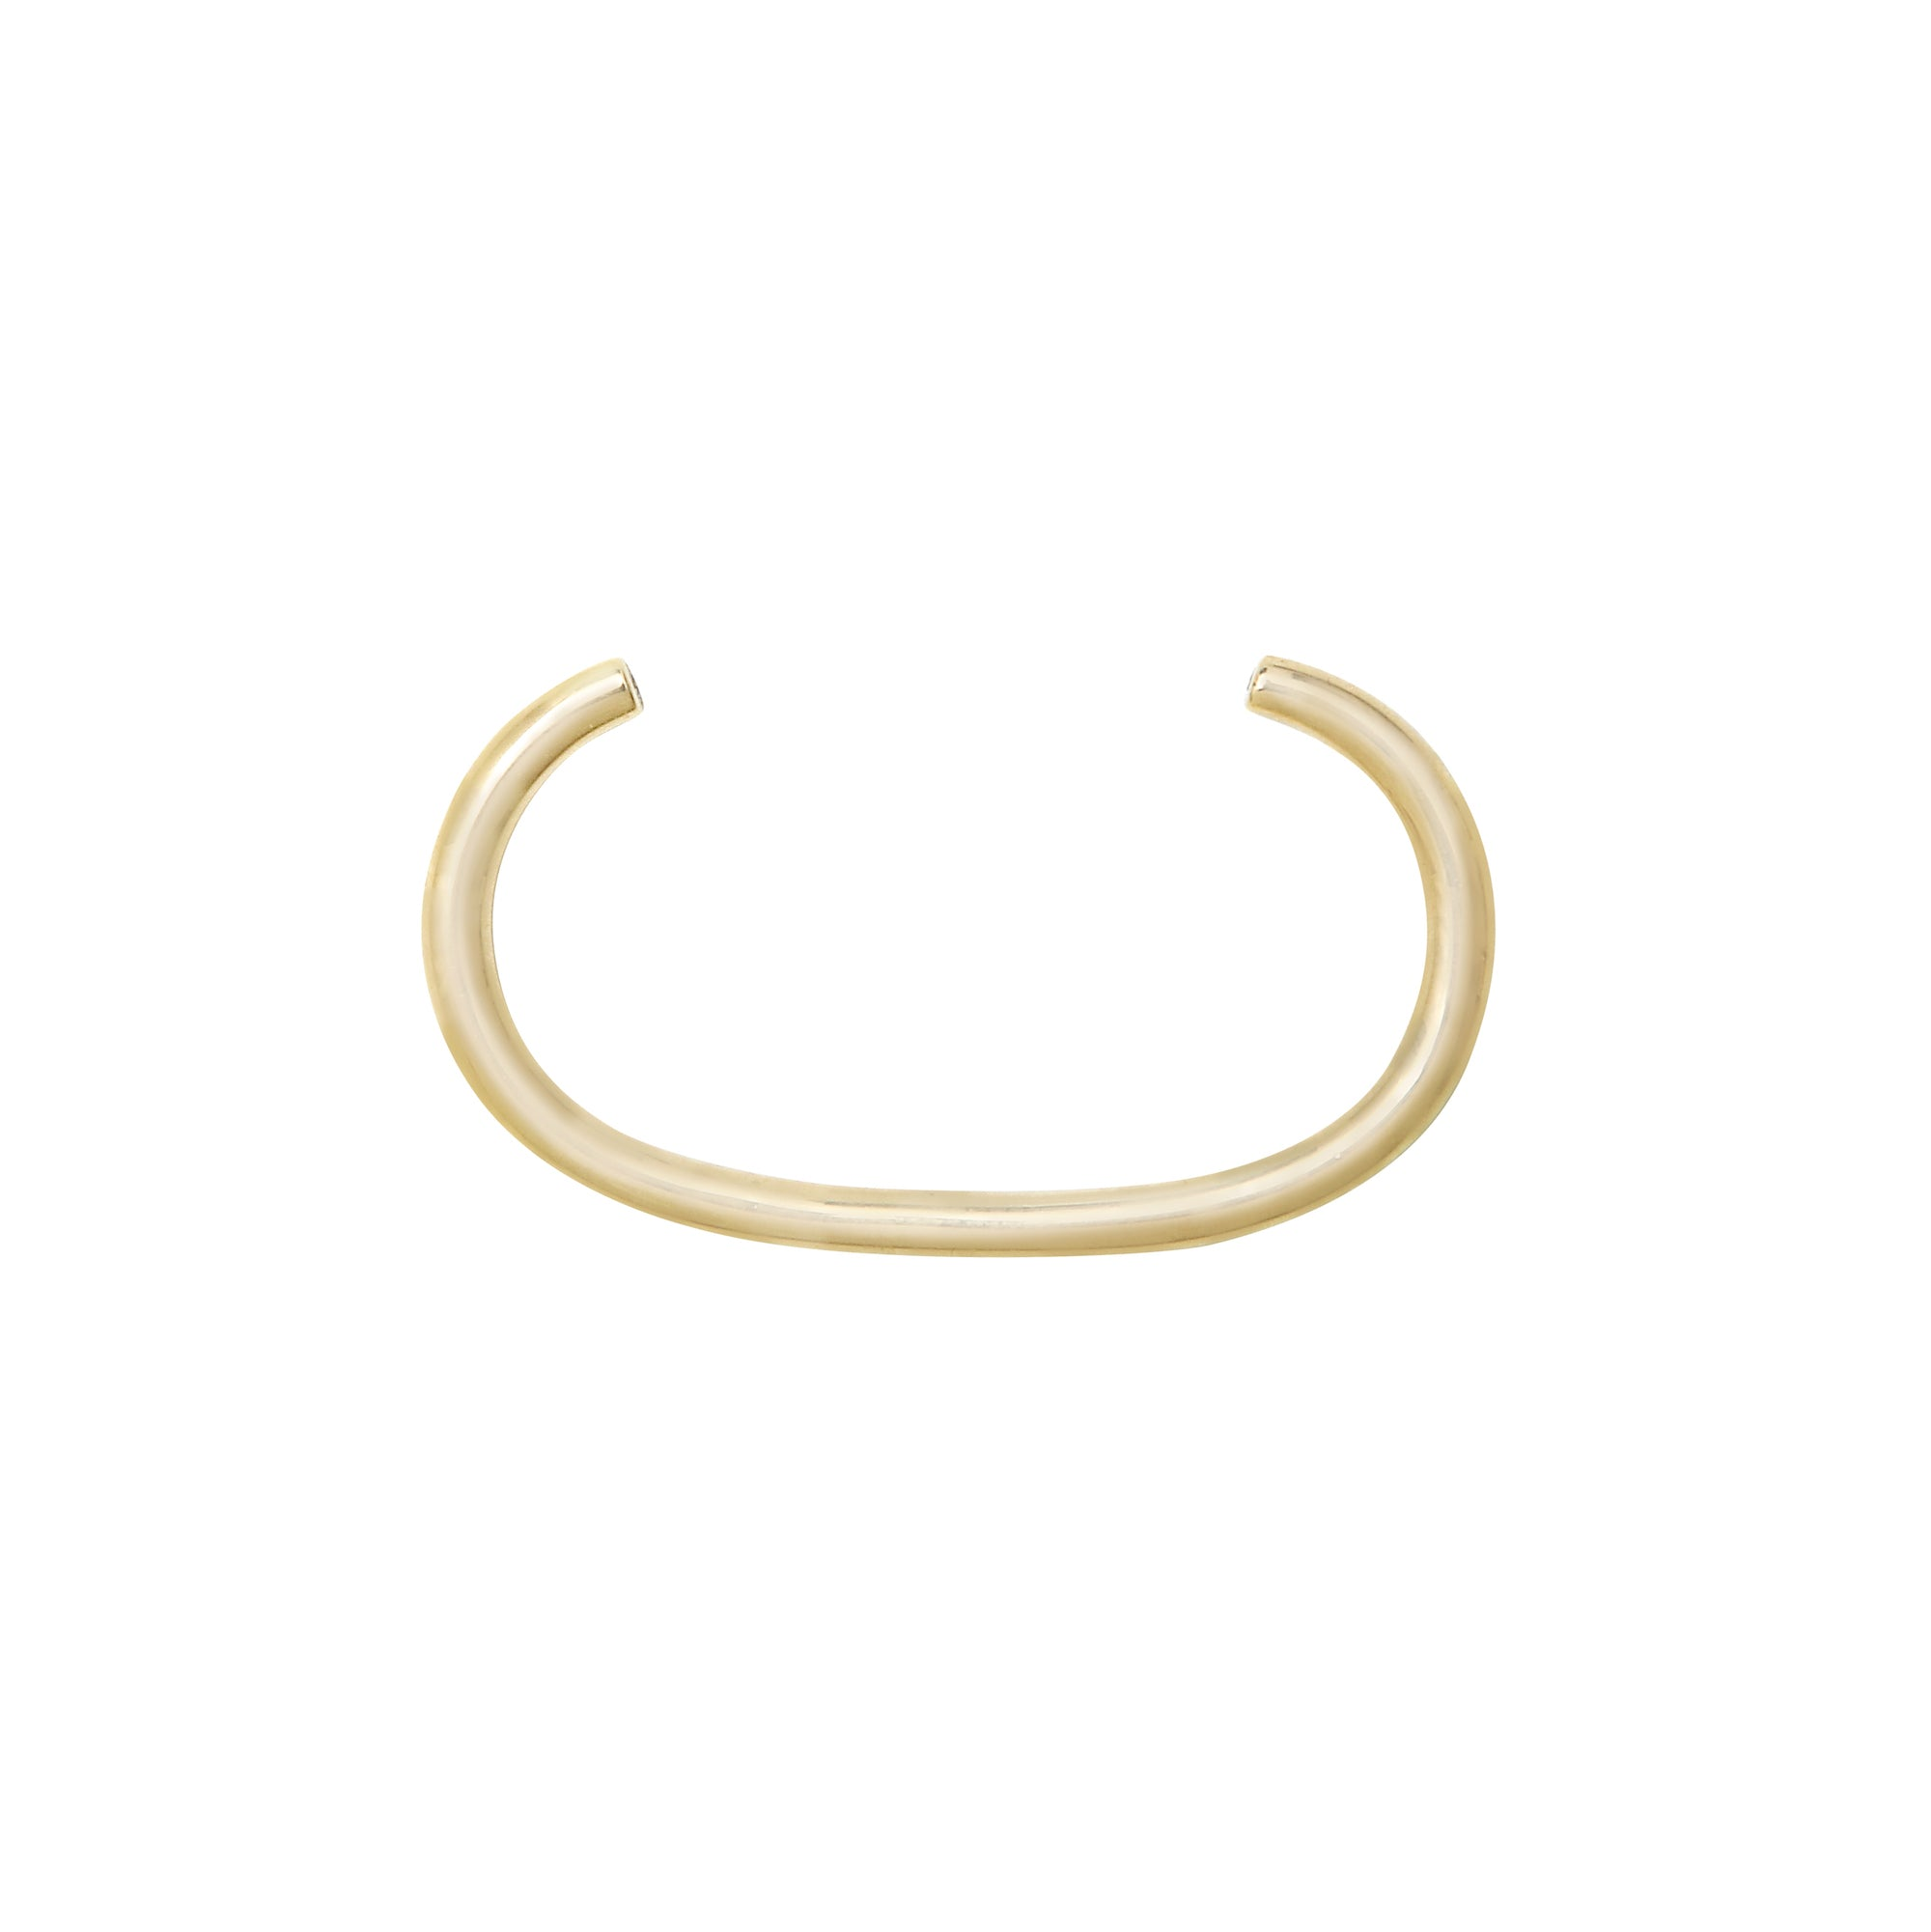 Aurore Havenne Gold and Diamond Tubular Double ring belgian designer bijou fin simple minimalist jewellery